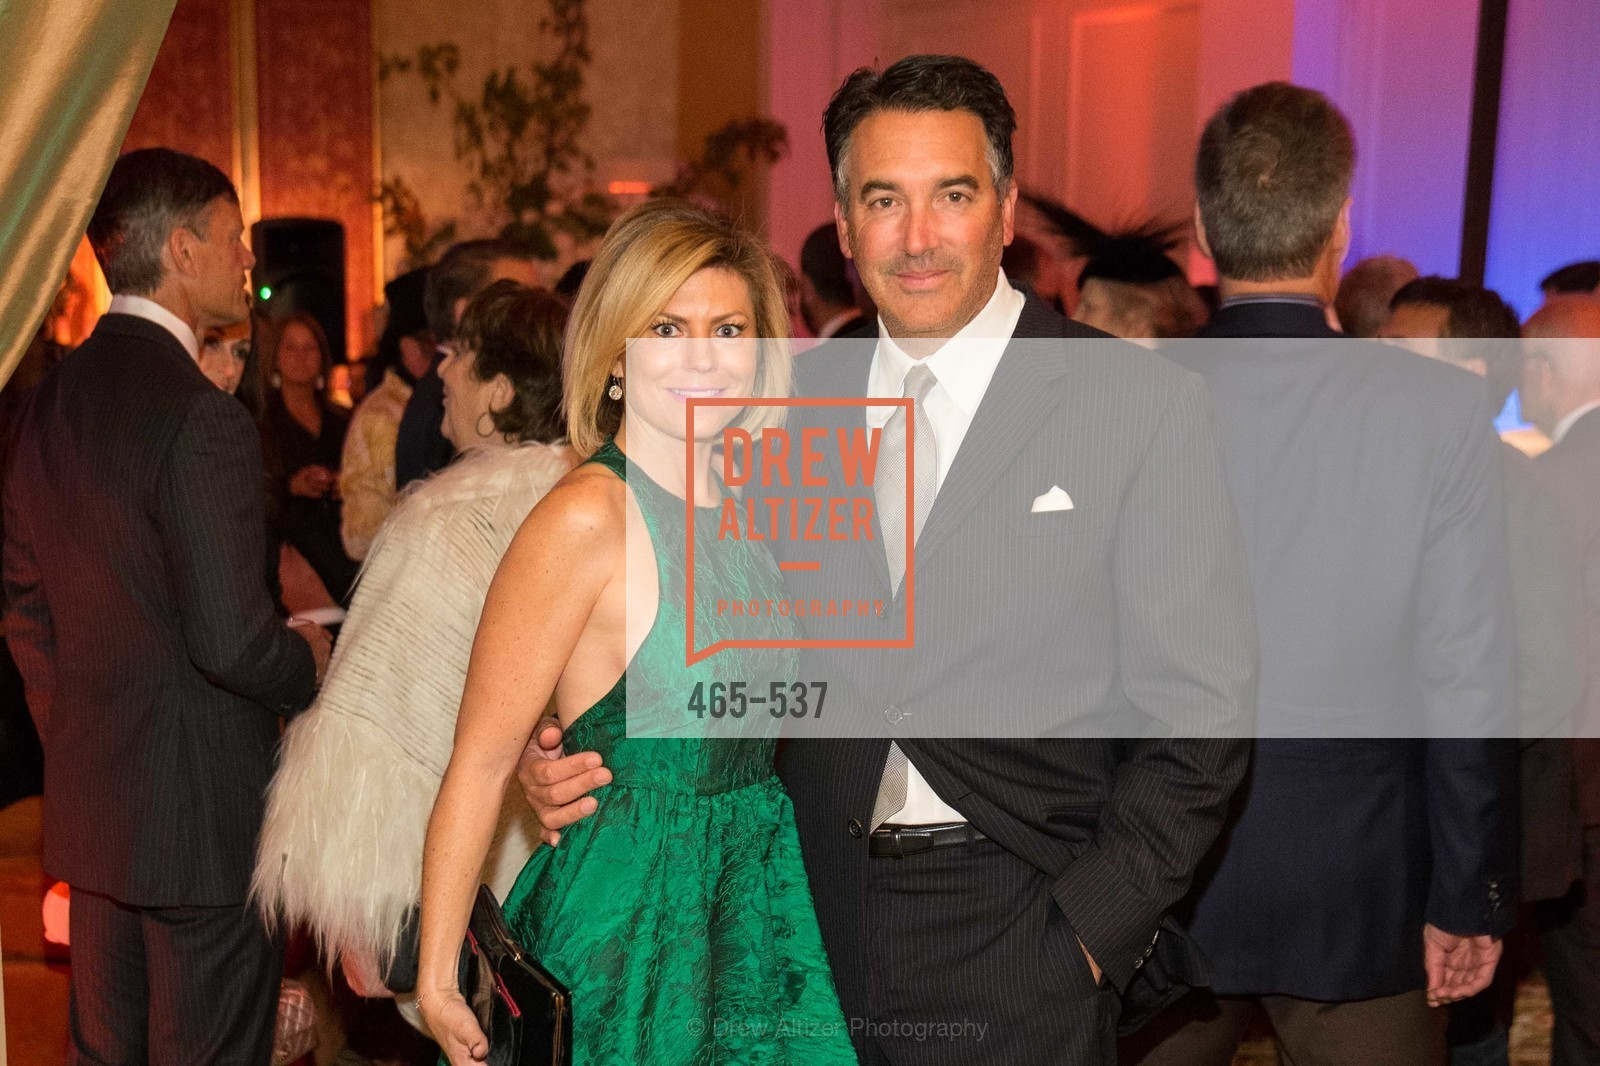 Kimberly Miller, Michael Polenske, TOP OF THE MARK'S 75TH Anniversary Party, US, November 6th, 2014,Drew Altizer, Drew Altizer Photography, full-service agency, private events, San Francisco photographer, photographer california